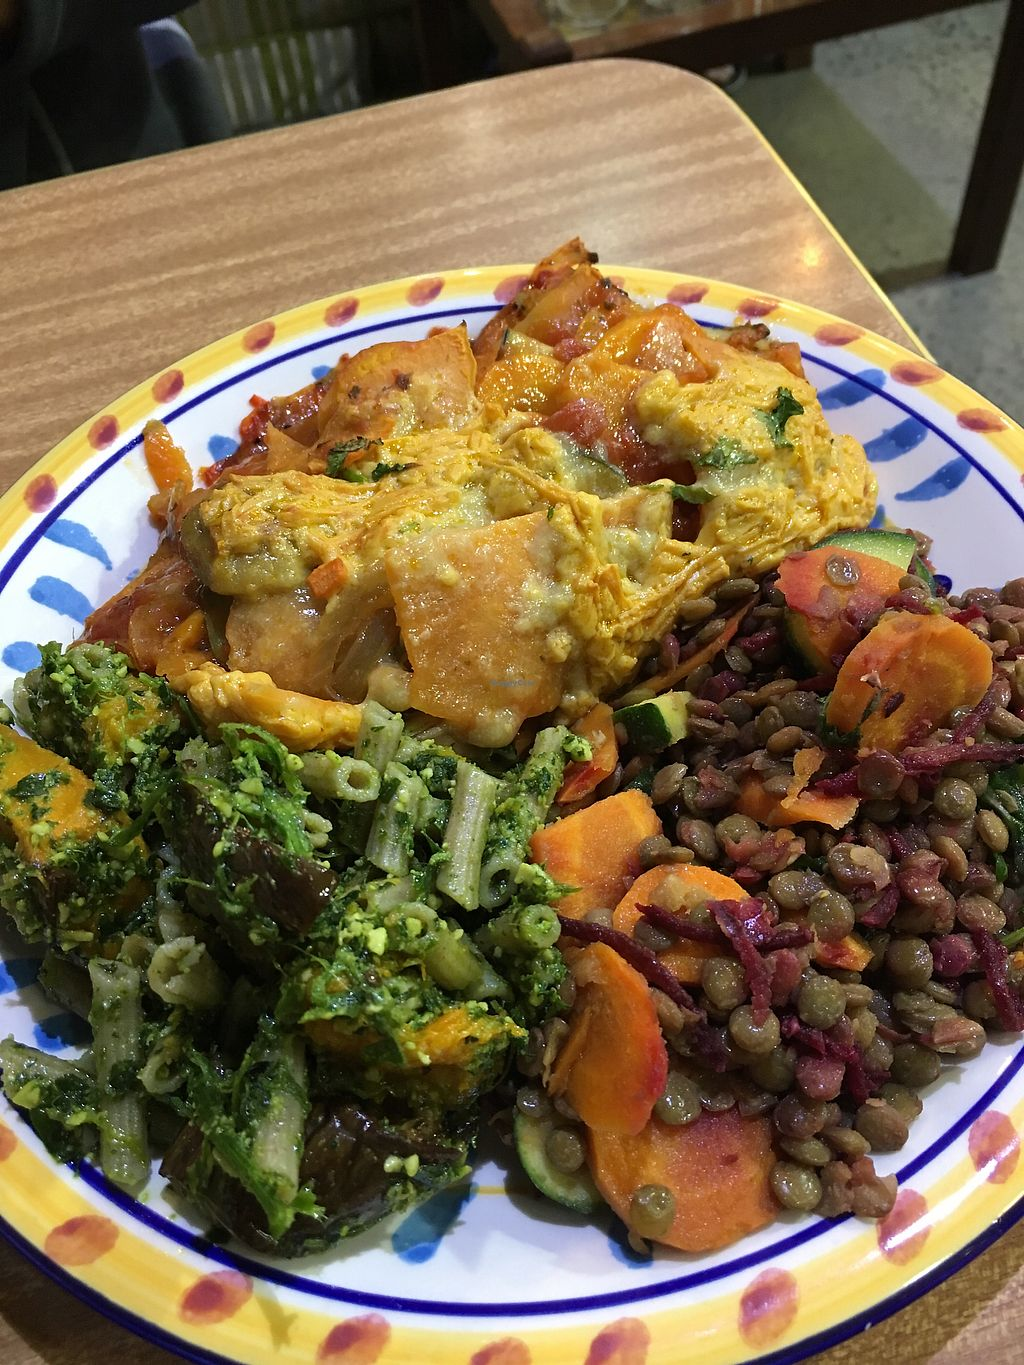 "Photo of Health Nuts Shop & Cafe  by <a href=""/members/profile/meianma"">meianma</a> <br/>Vegan lasagne with lentil and cake salad <br/> March 1, 2018  - <a href='/contact/abuse/image/78492/365486'>Report</a>"